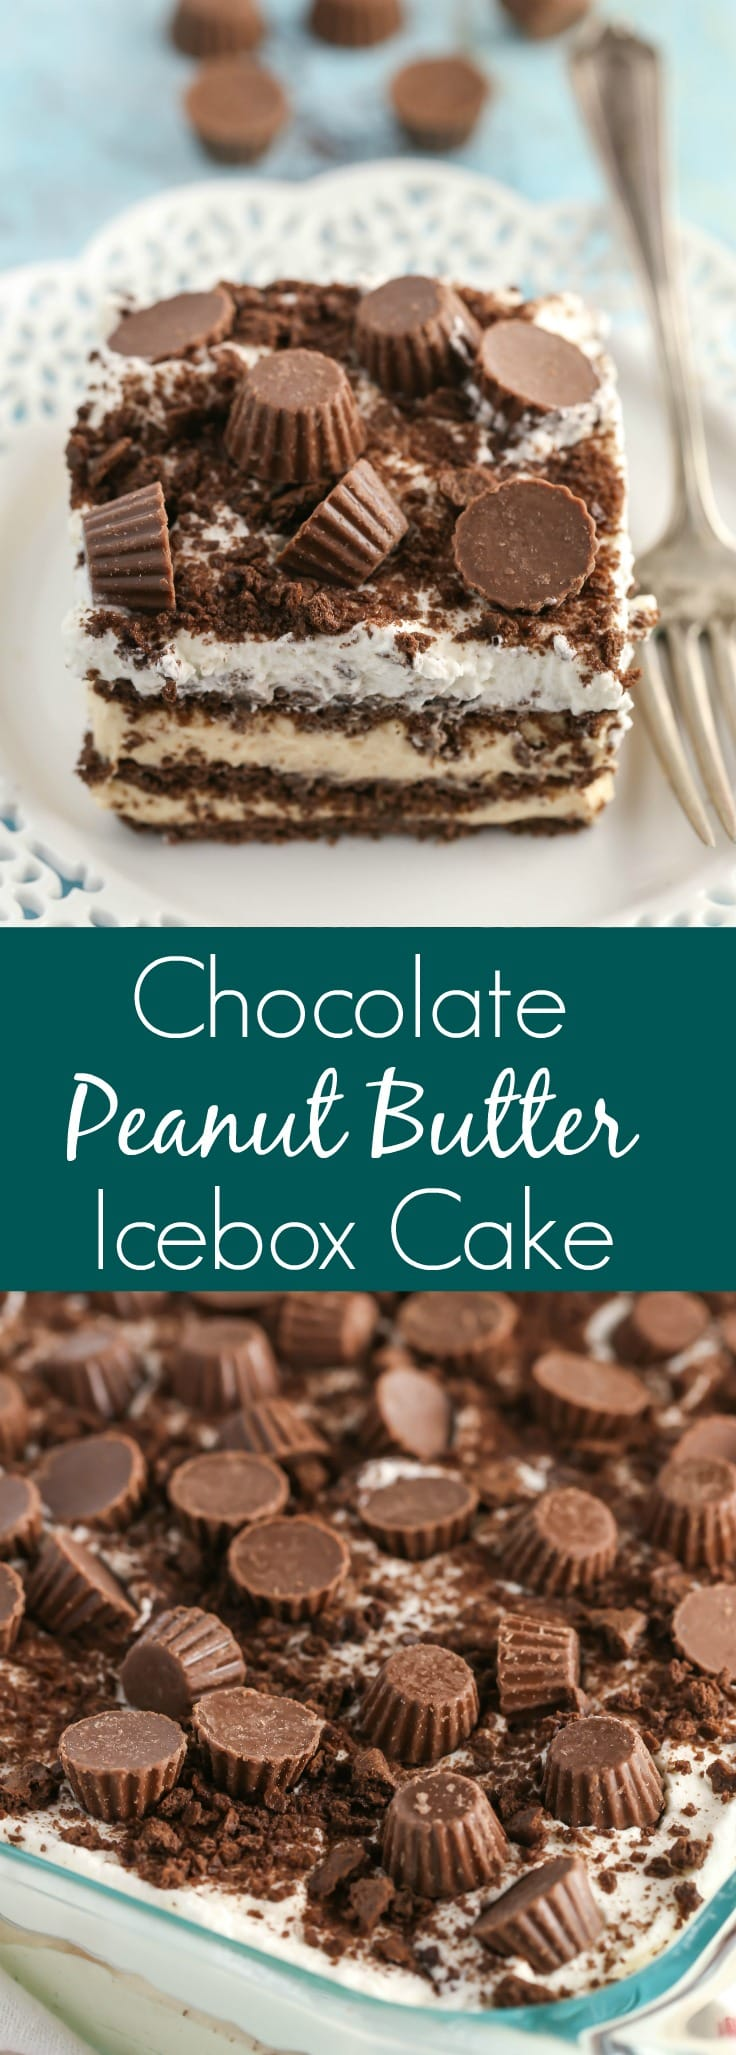 ... Chocolate Peanut Butter Icebox Cake is an easy and delicious no-bake